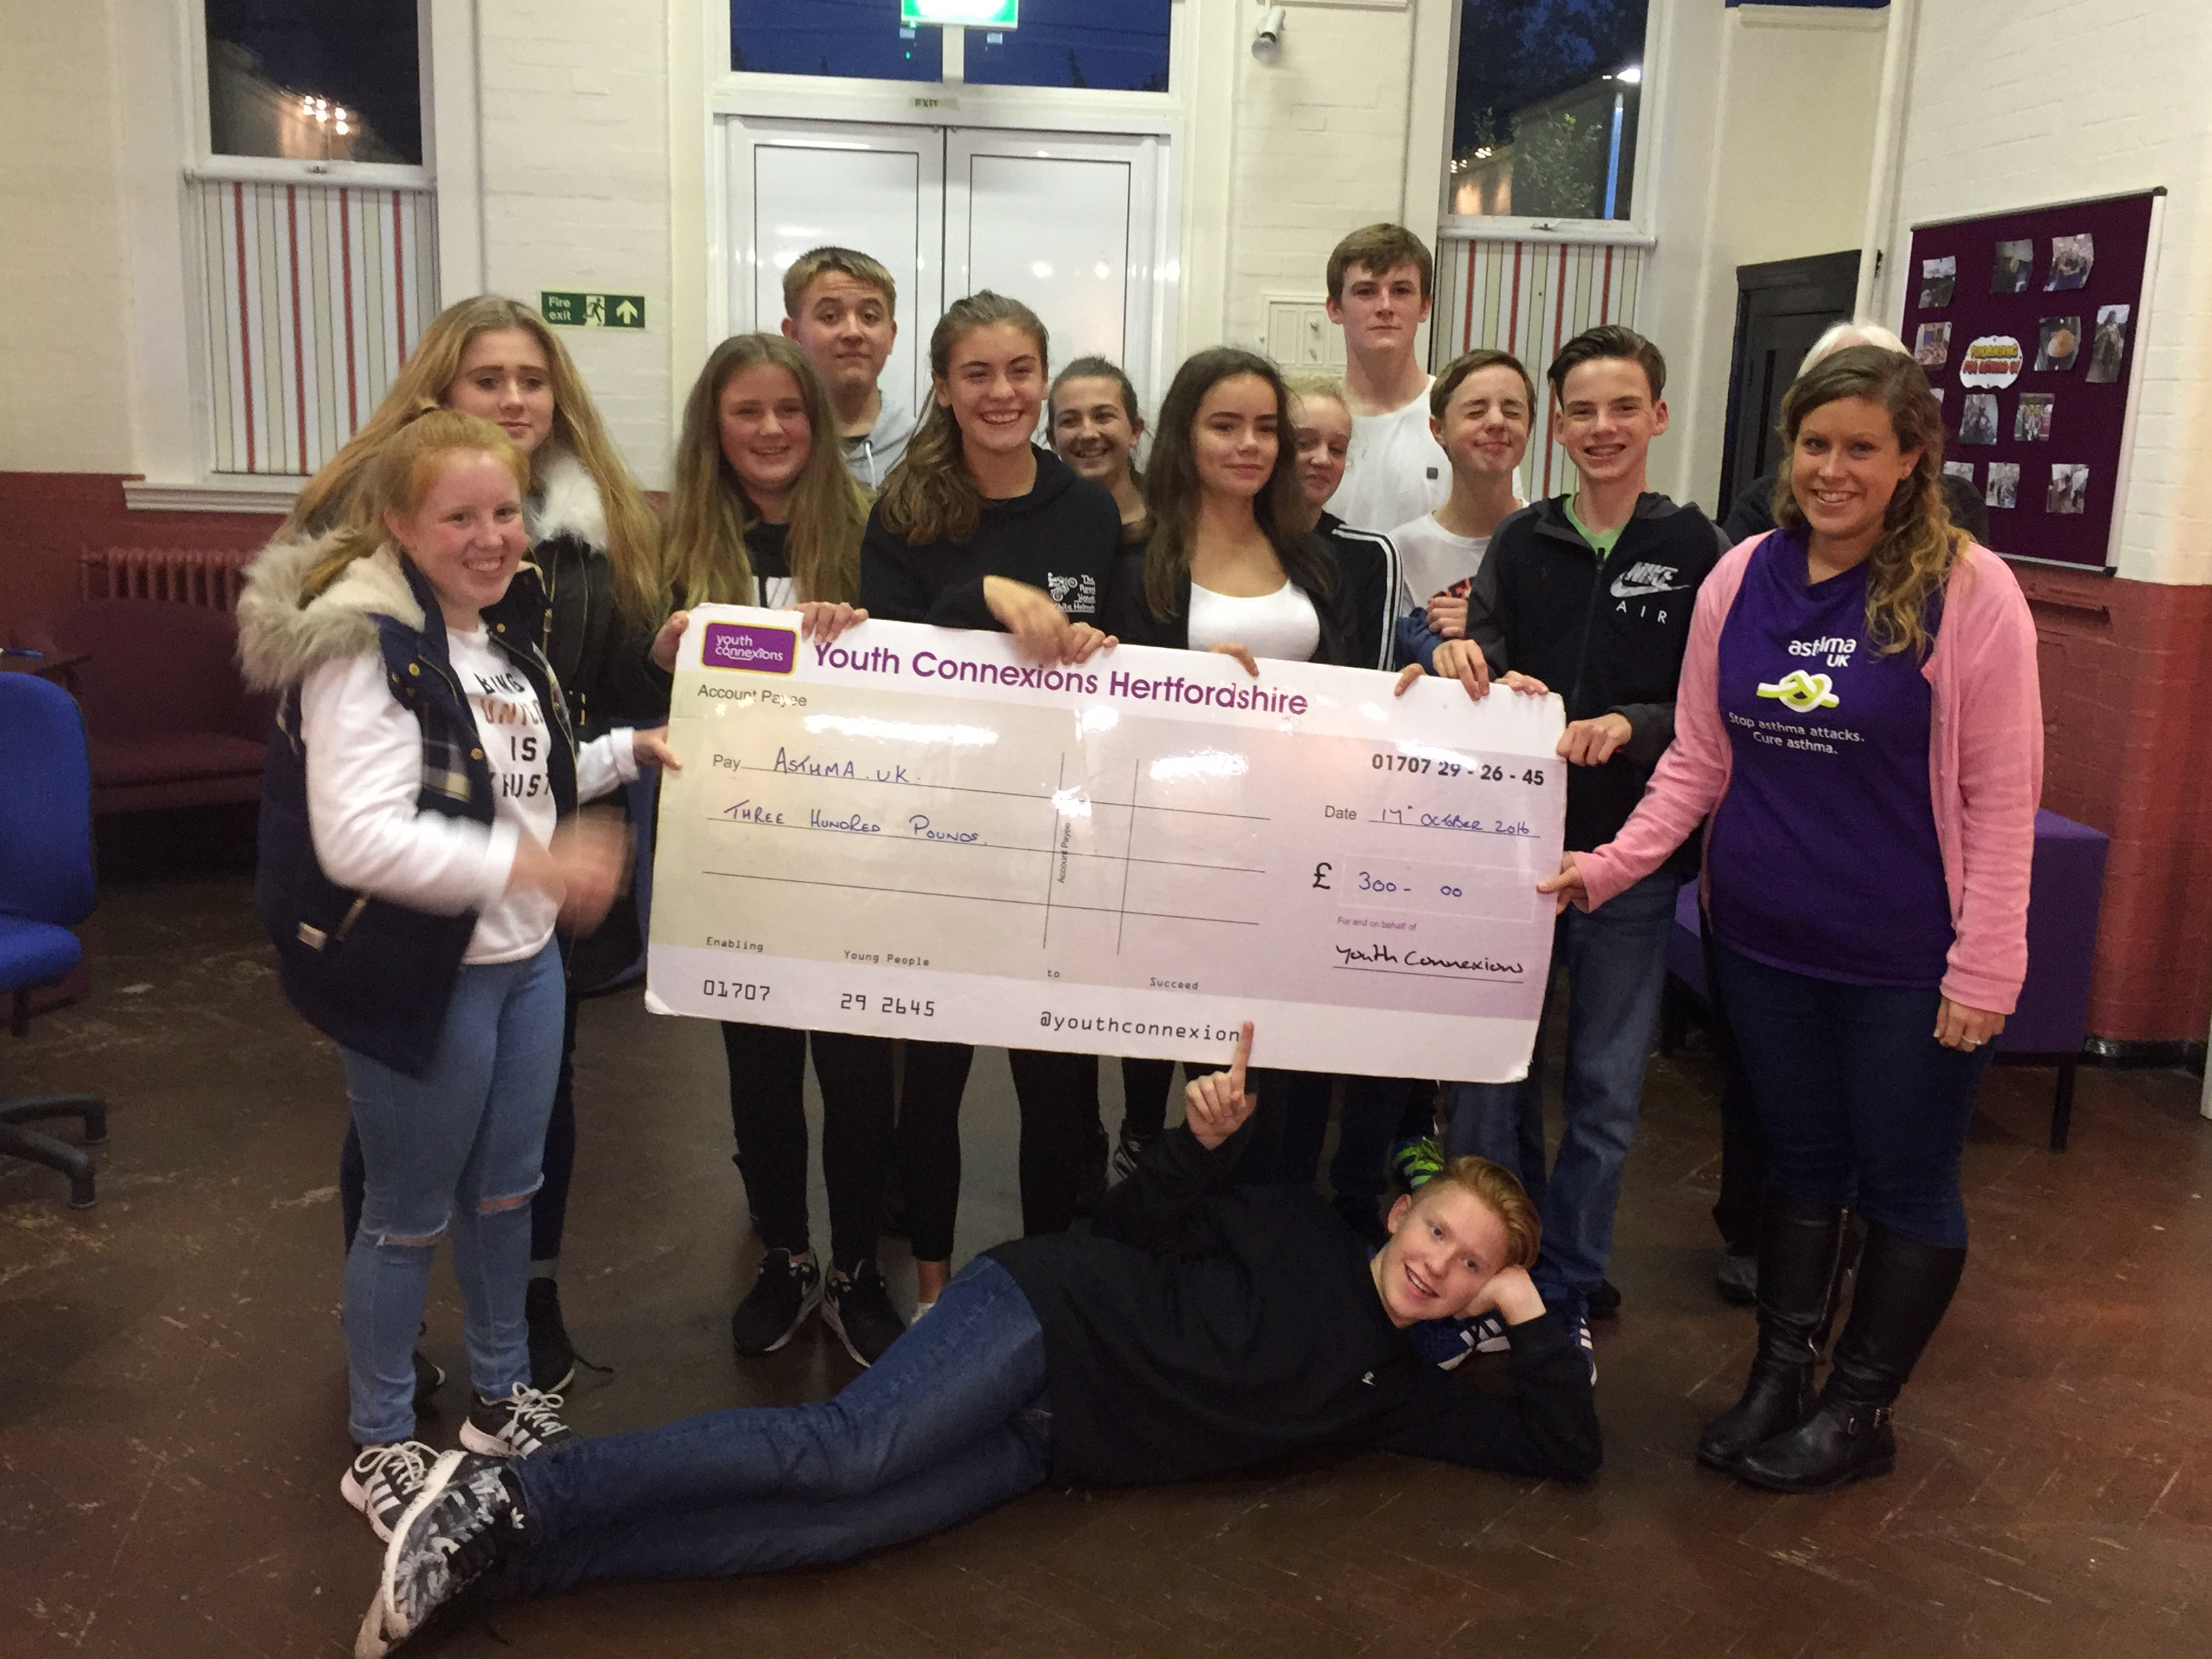 Young people raise £300 for Asthma UK